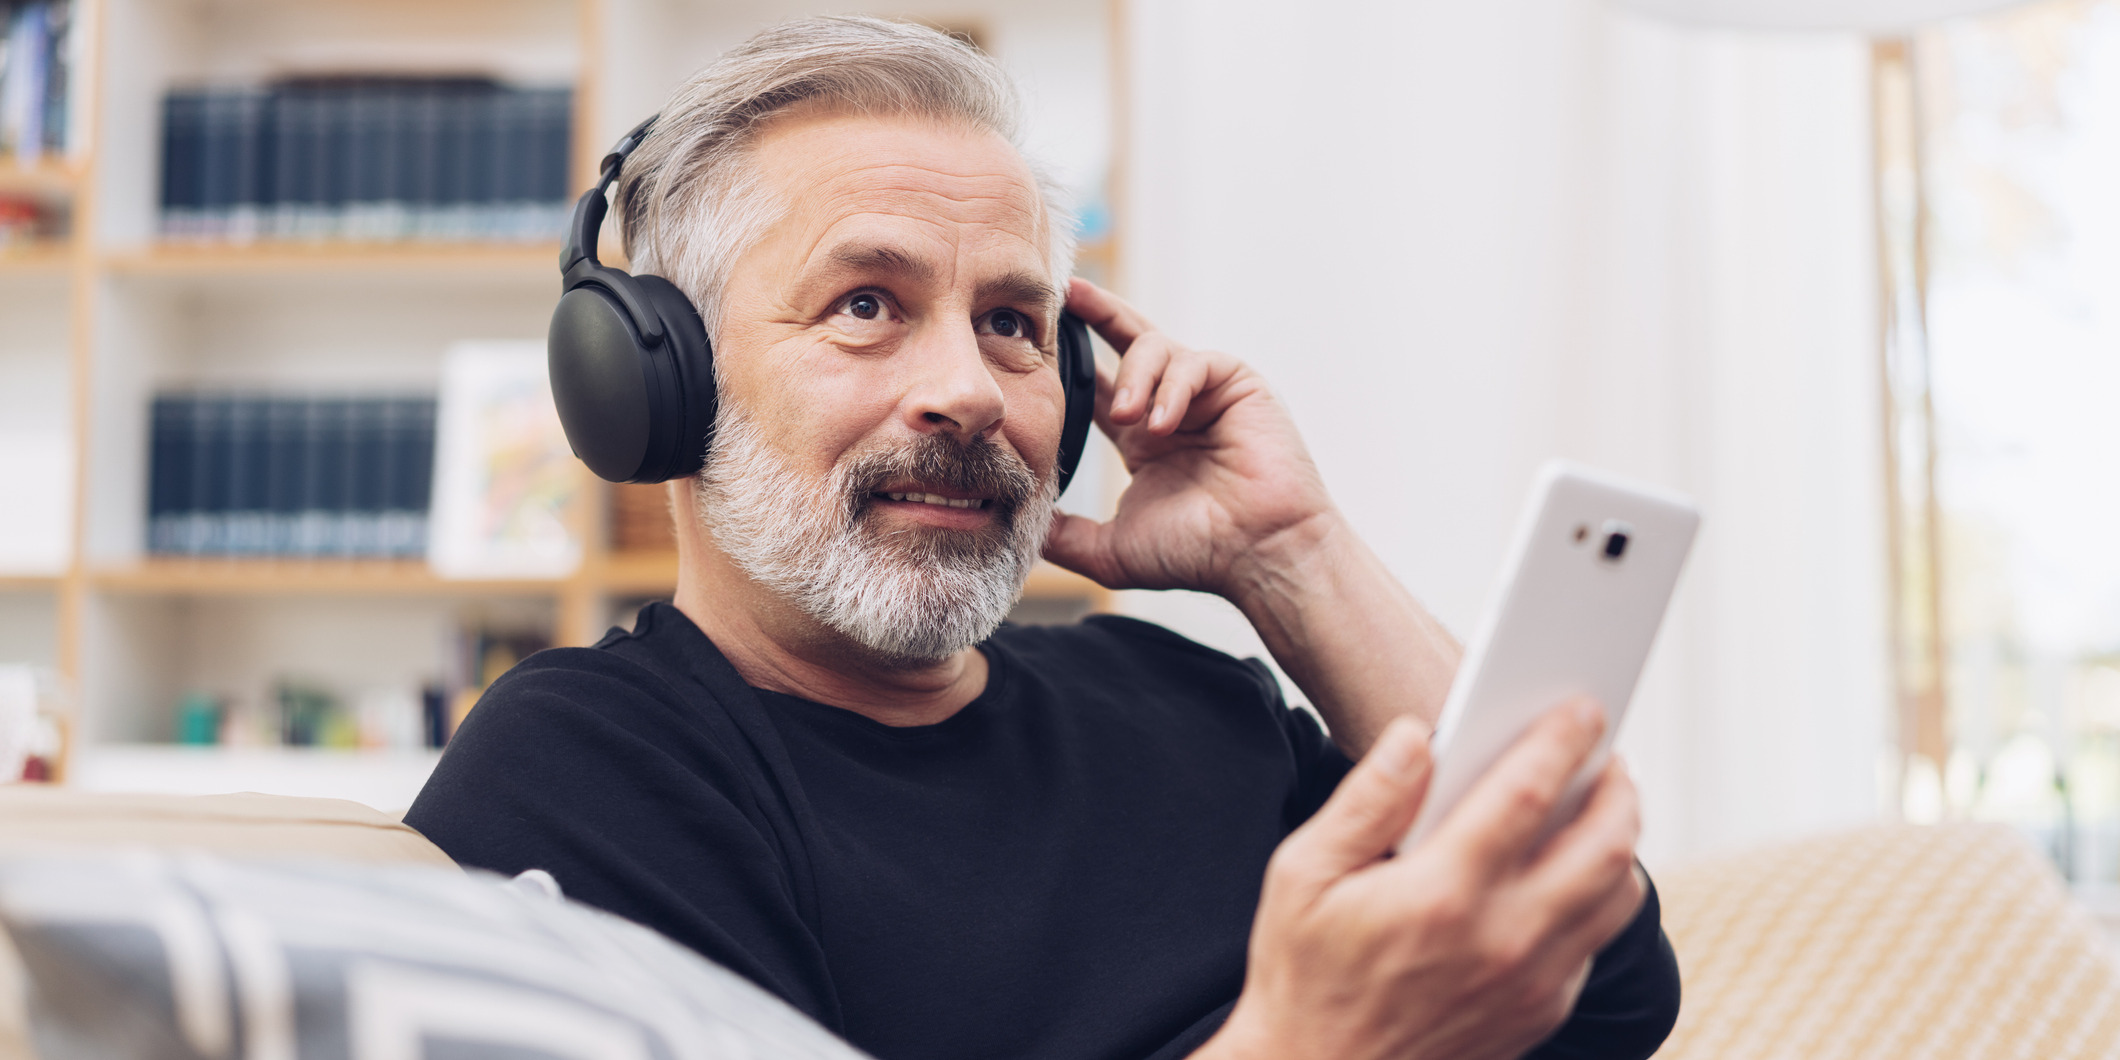 5 Sales Podcasts That Motivate Sales Teams